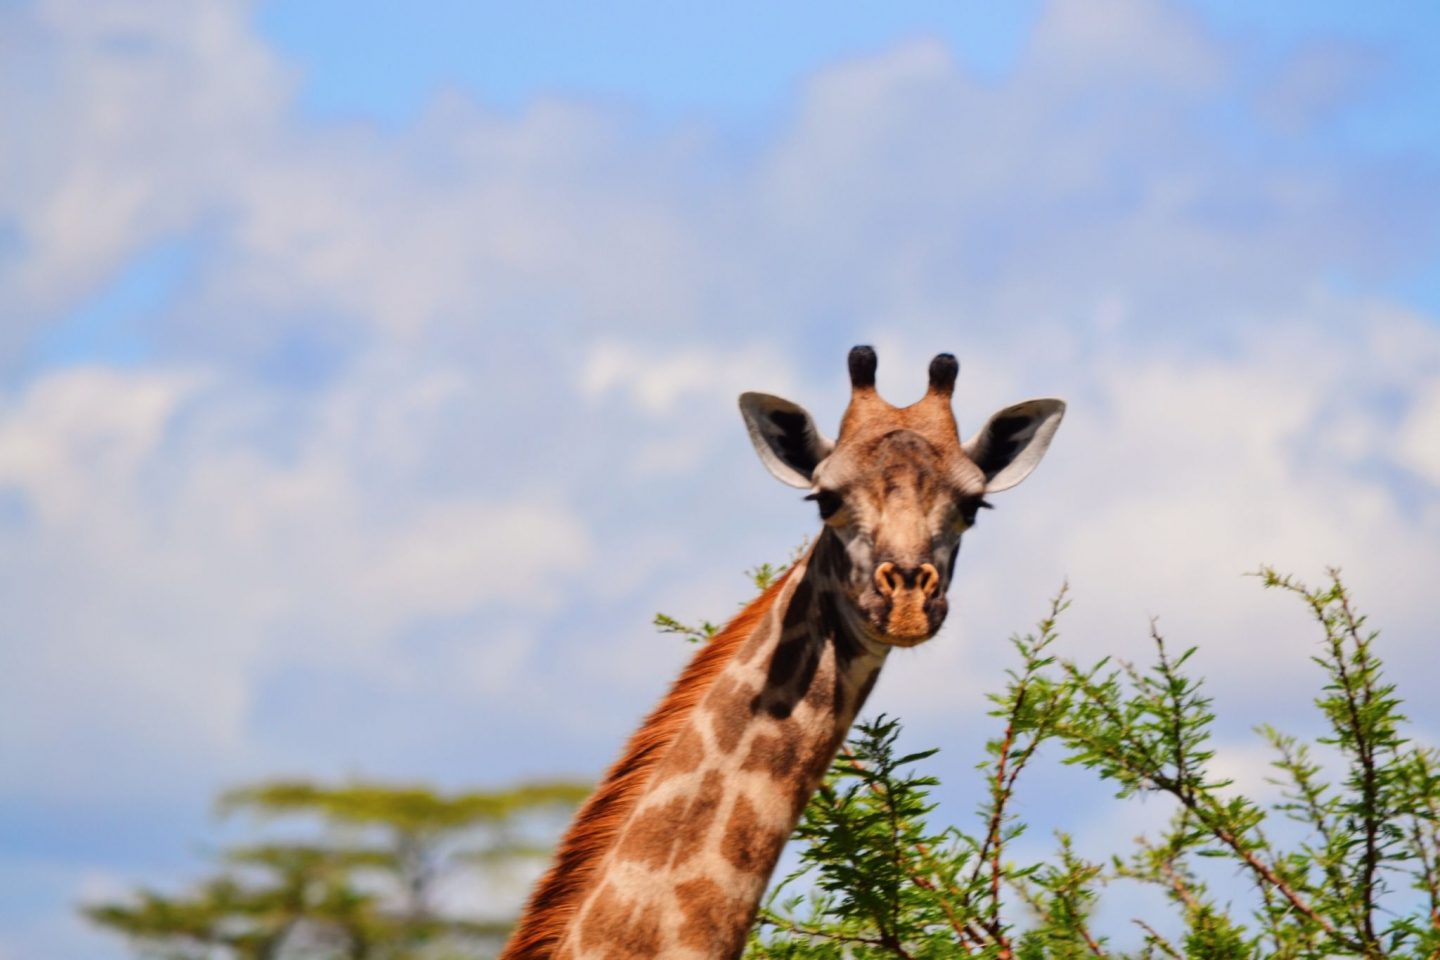 The Selous Game Reserve in Tanzania